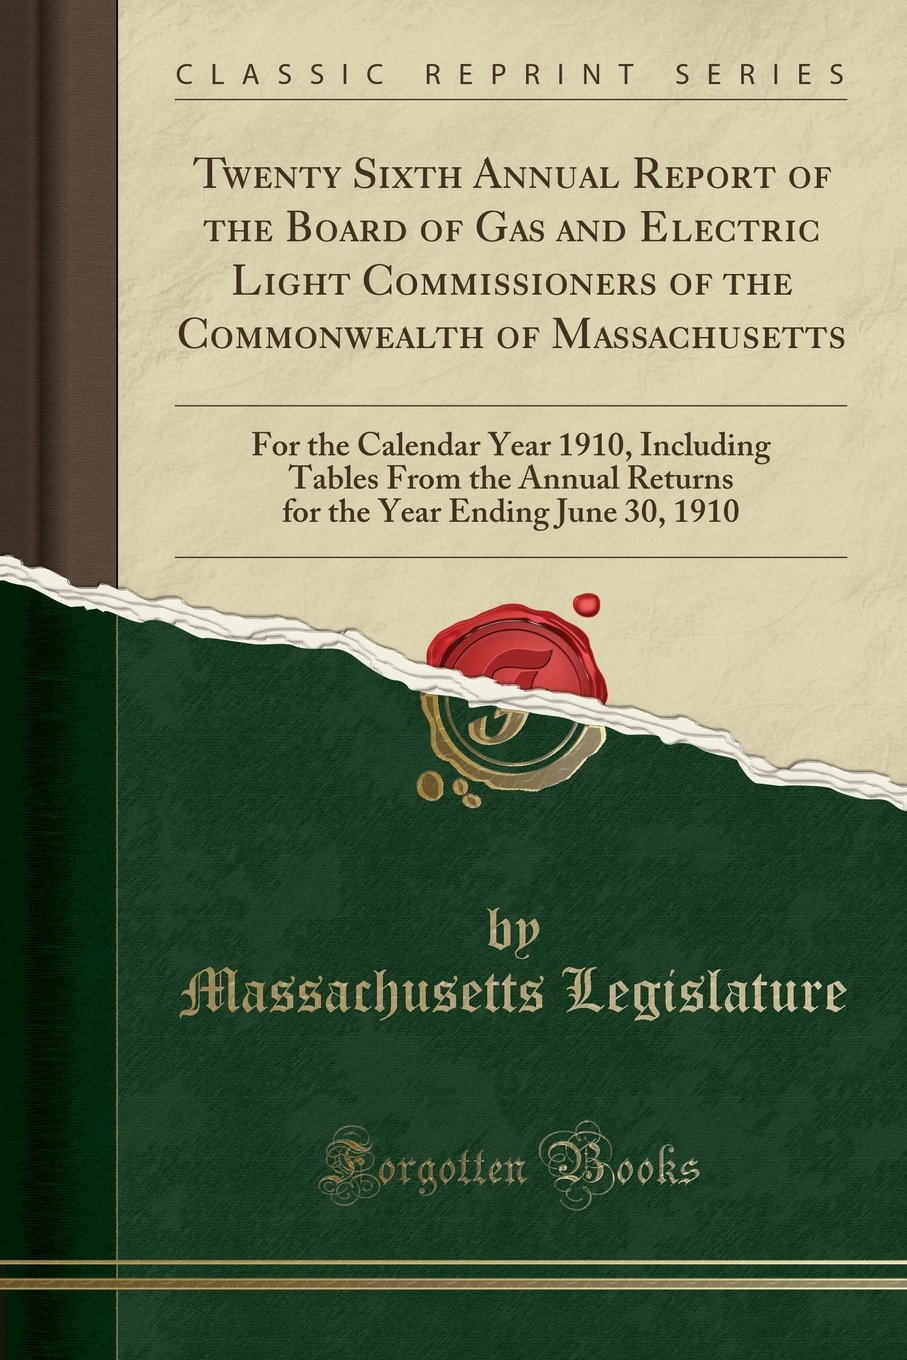 Download Twenty Sixth Annual Report of the Board of Gas and Electric Light Commissioners of the Commonwealth of Massachusetts: For the Calendar Year 1910, ... Year Ending June 30, 1910 (Classic Reprint) PDF